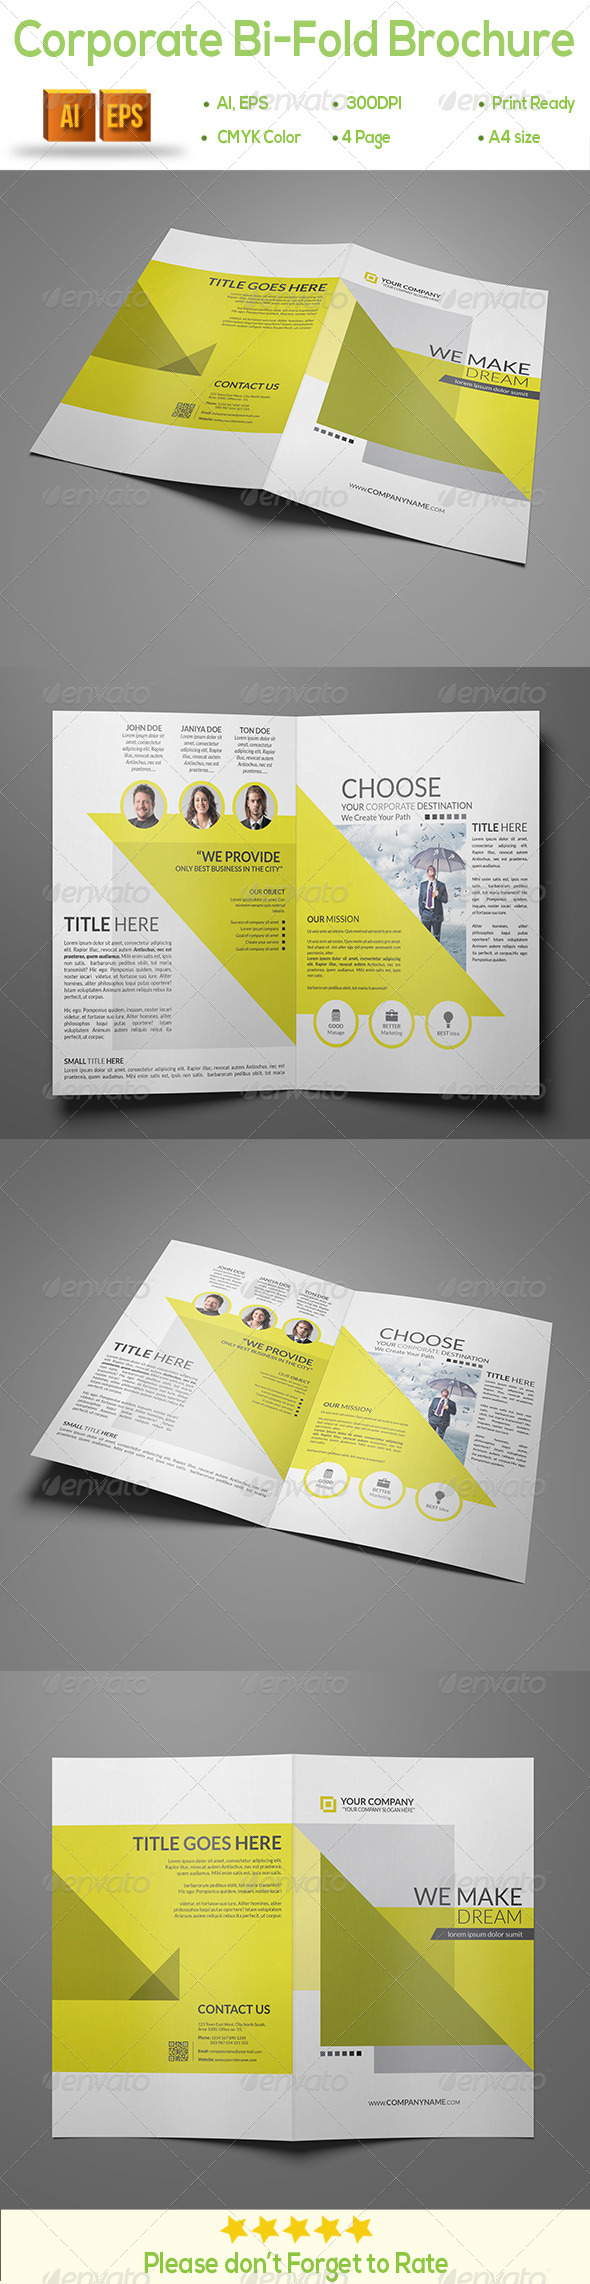 GraphicRiver Corporate Bi-Fold Brochure 8611413